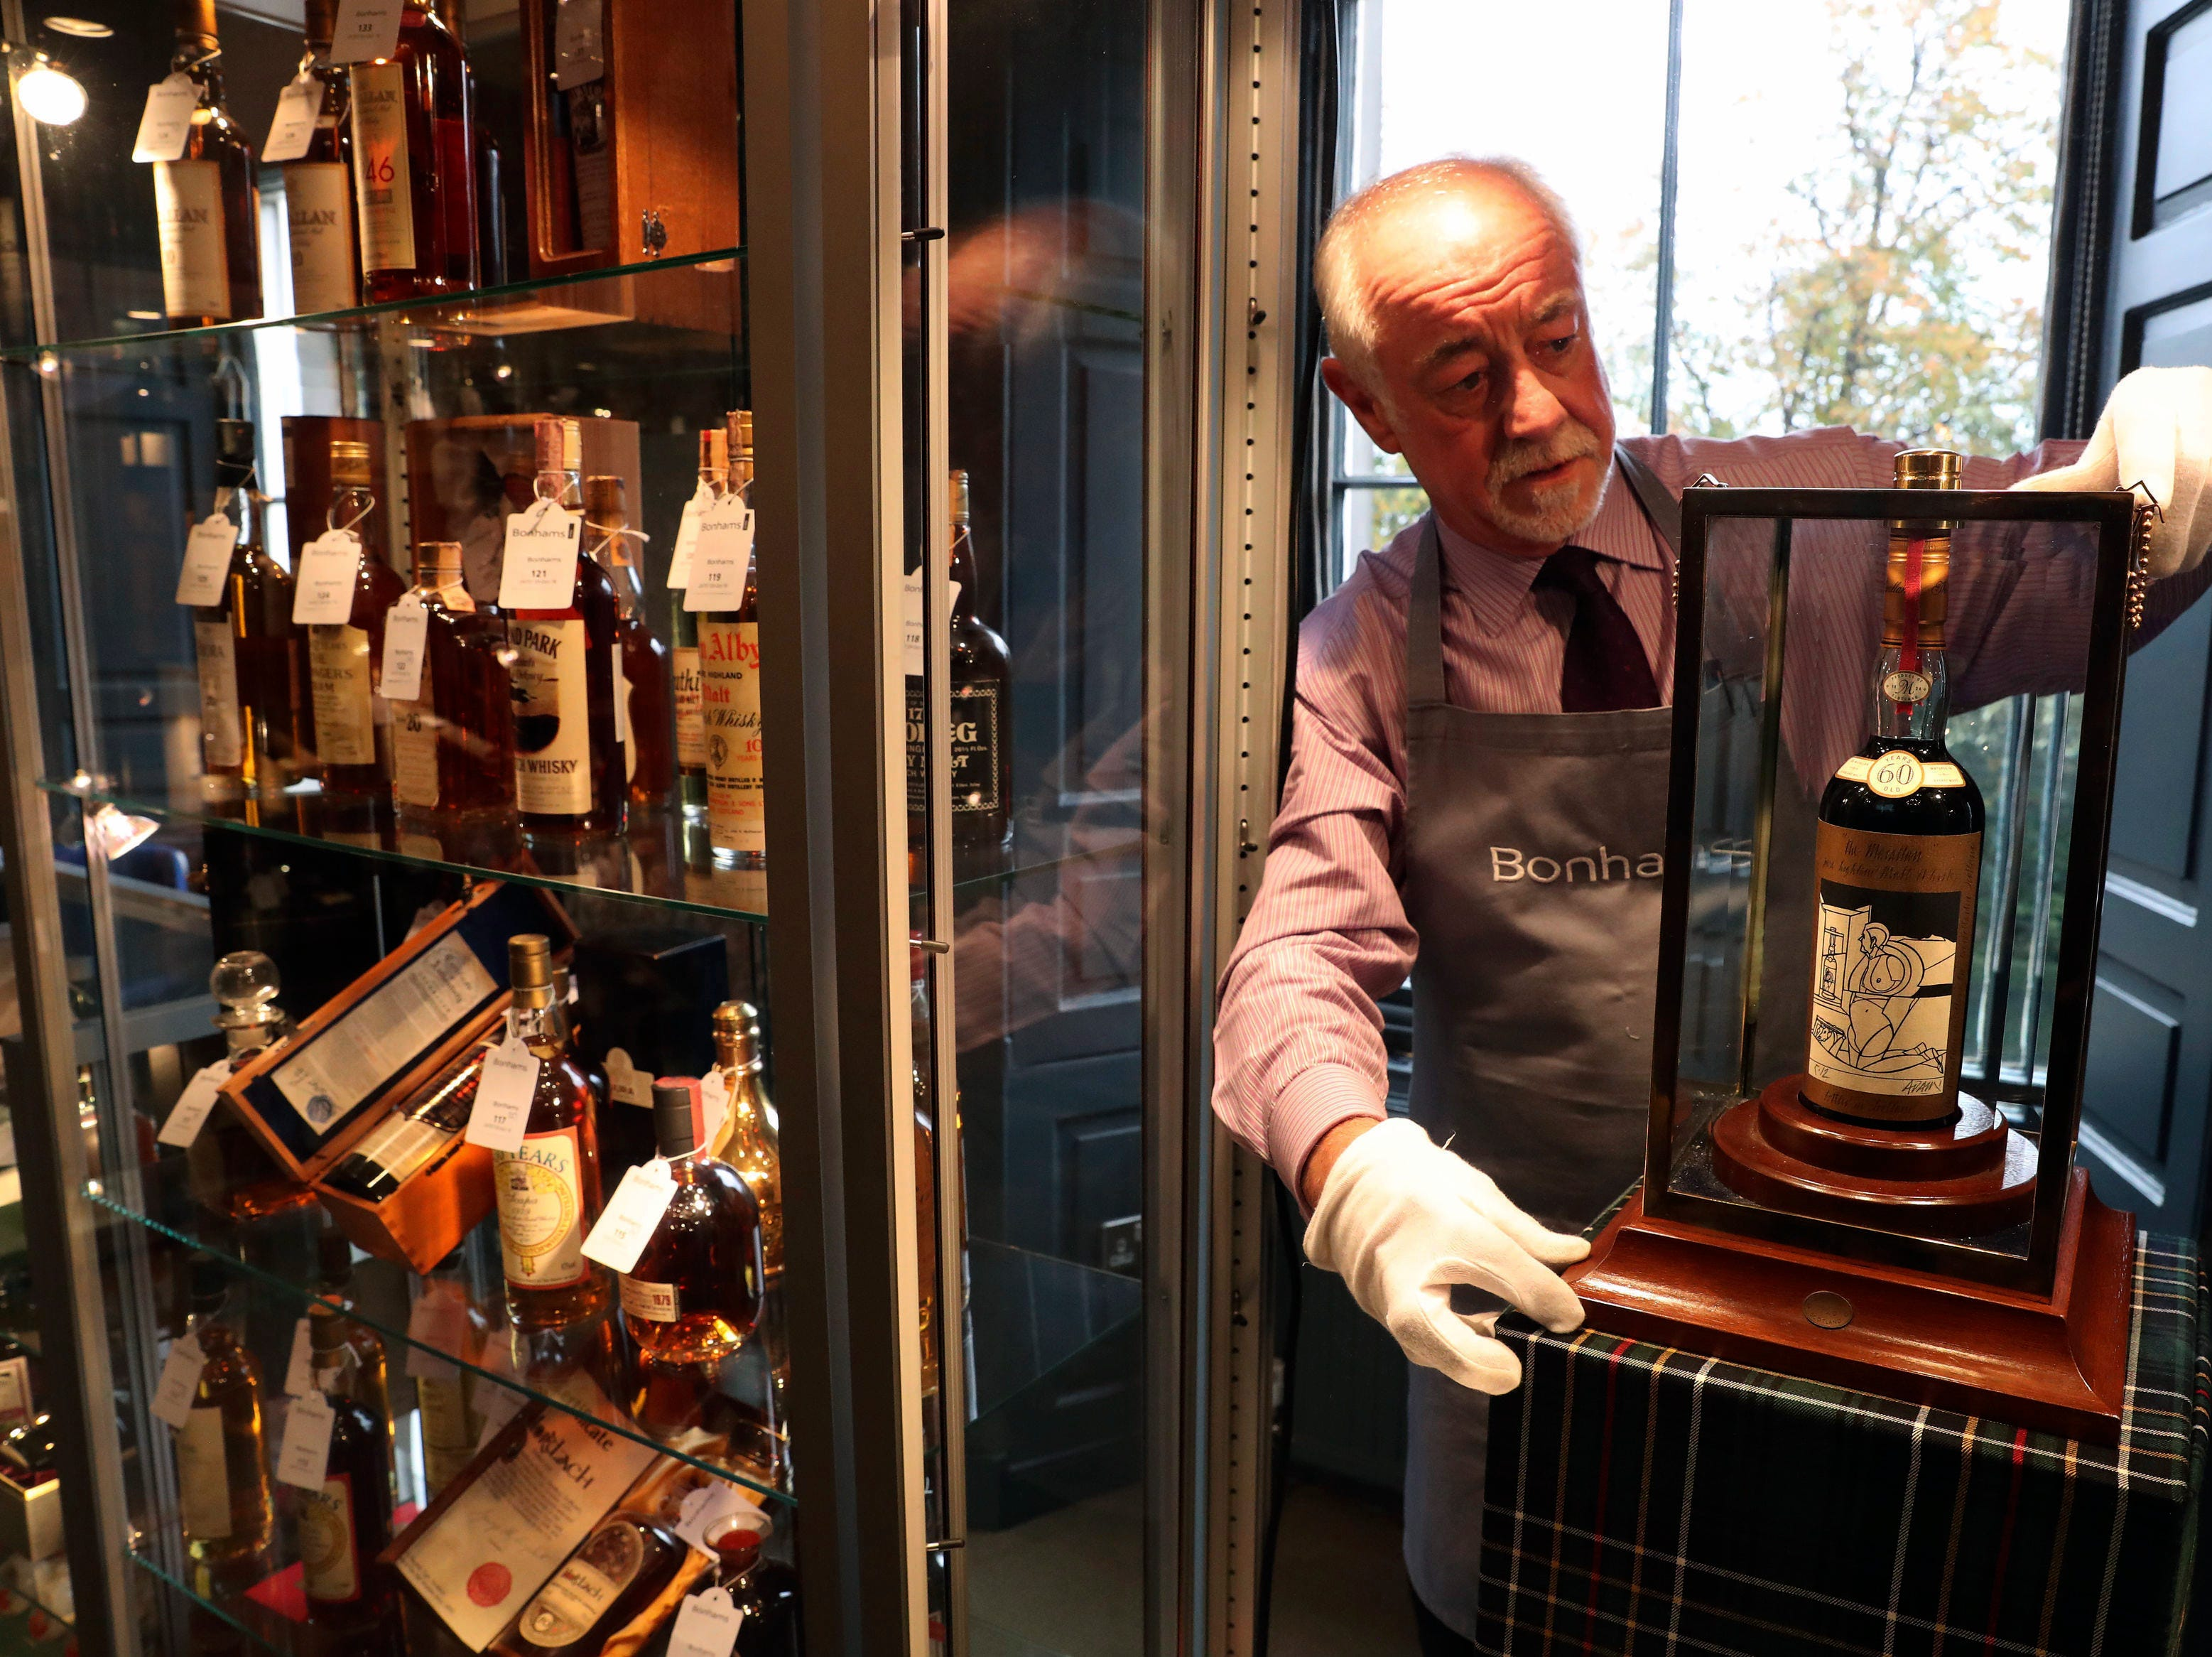 Danny McIlwraith from Bonhams auction house holds bottle of the world's rarest and most valuable whisky, The Macallan Valerio Adami, at the Bonhams Whisky Sale at their Edinburgh auction house in Edinburgh, Wednesday, Oct. 3, 2018. It was eventually sold for £848,750 ($1,102,516).